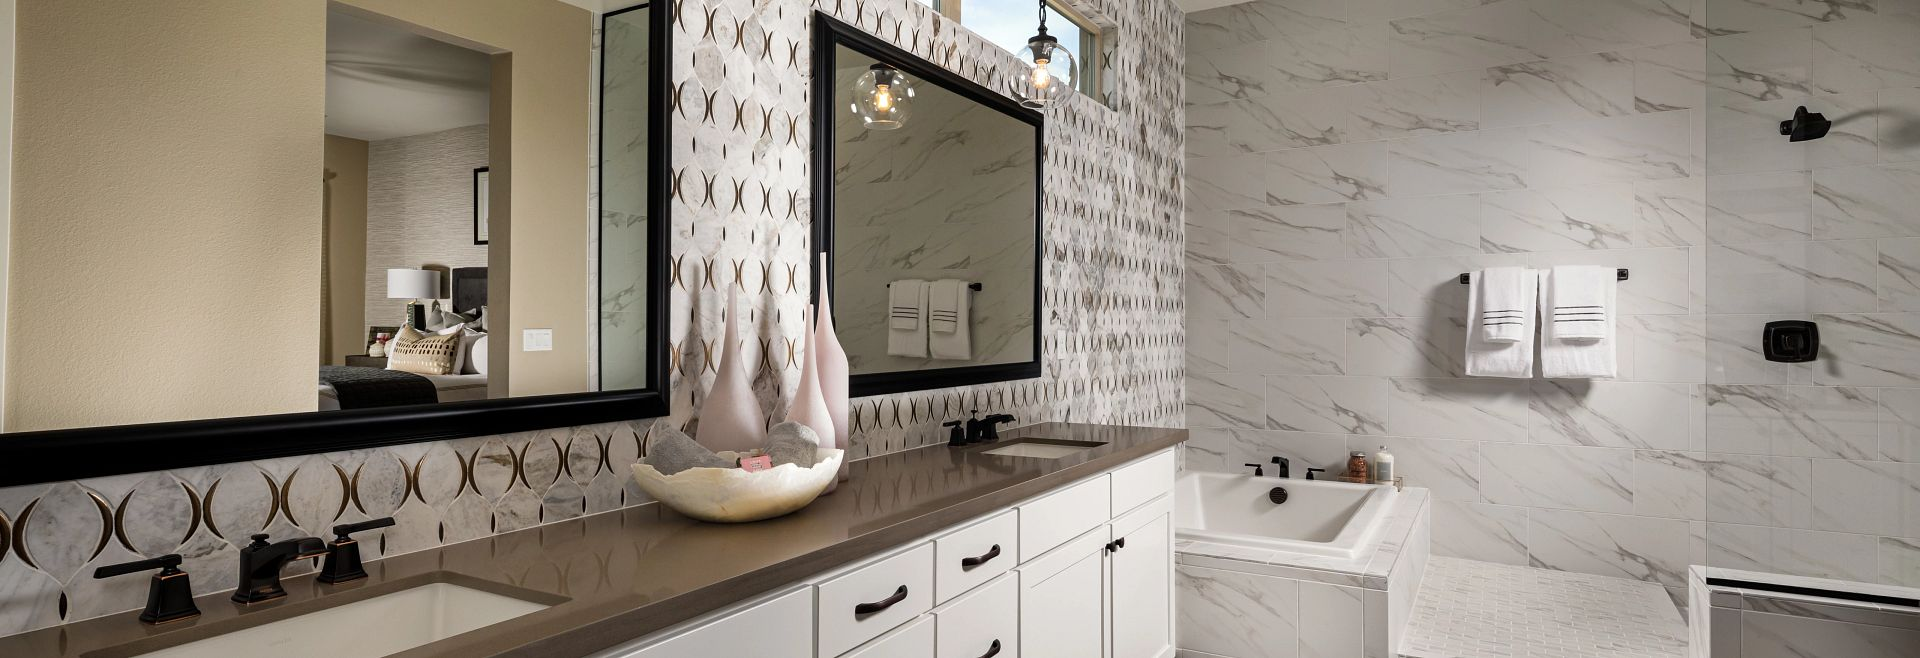 Trilogy Summerlin Luster Master Bath